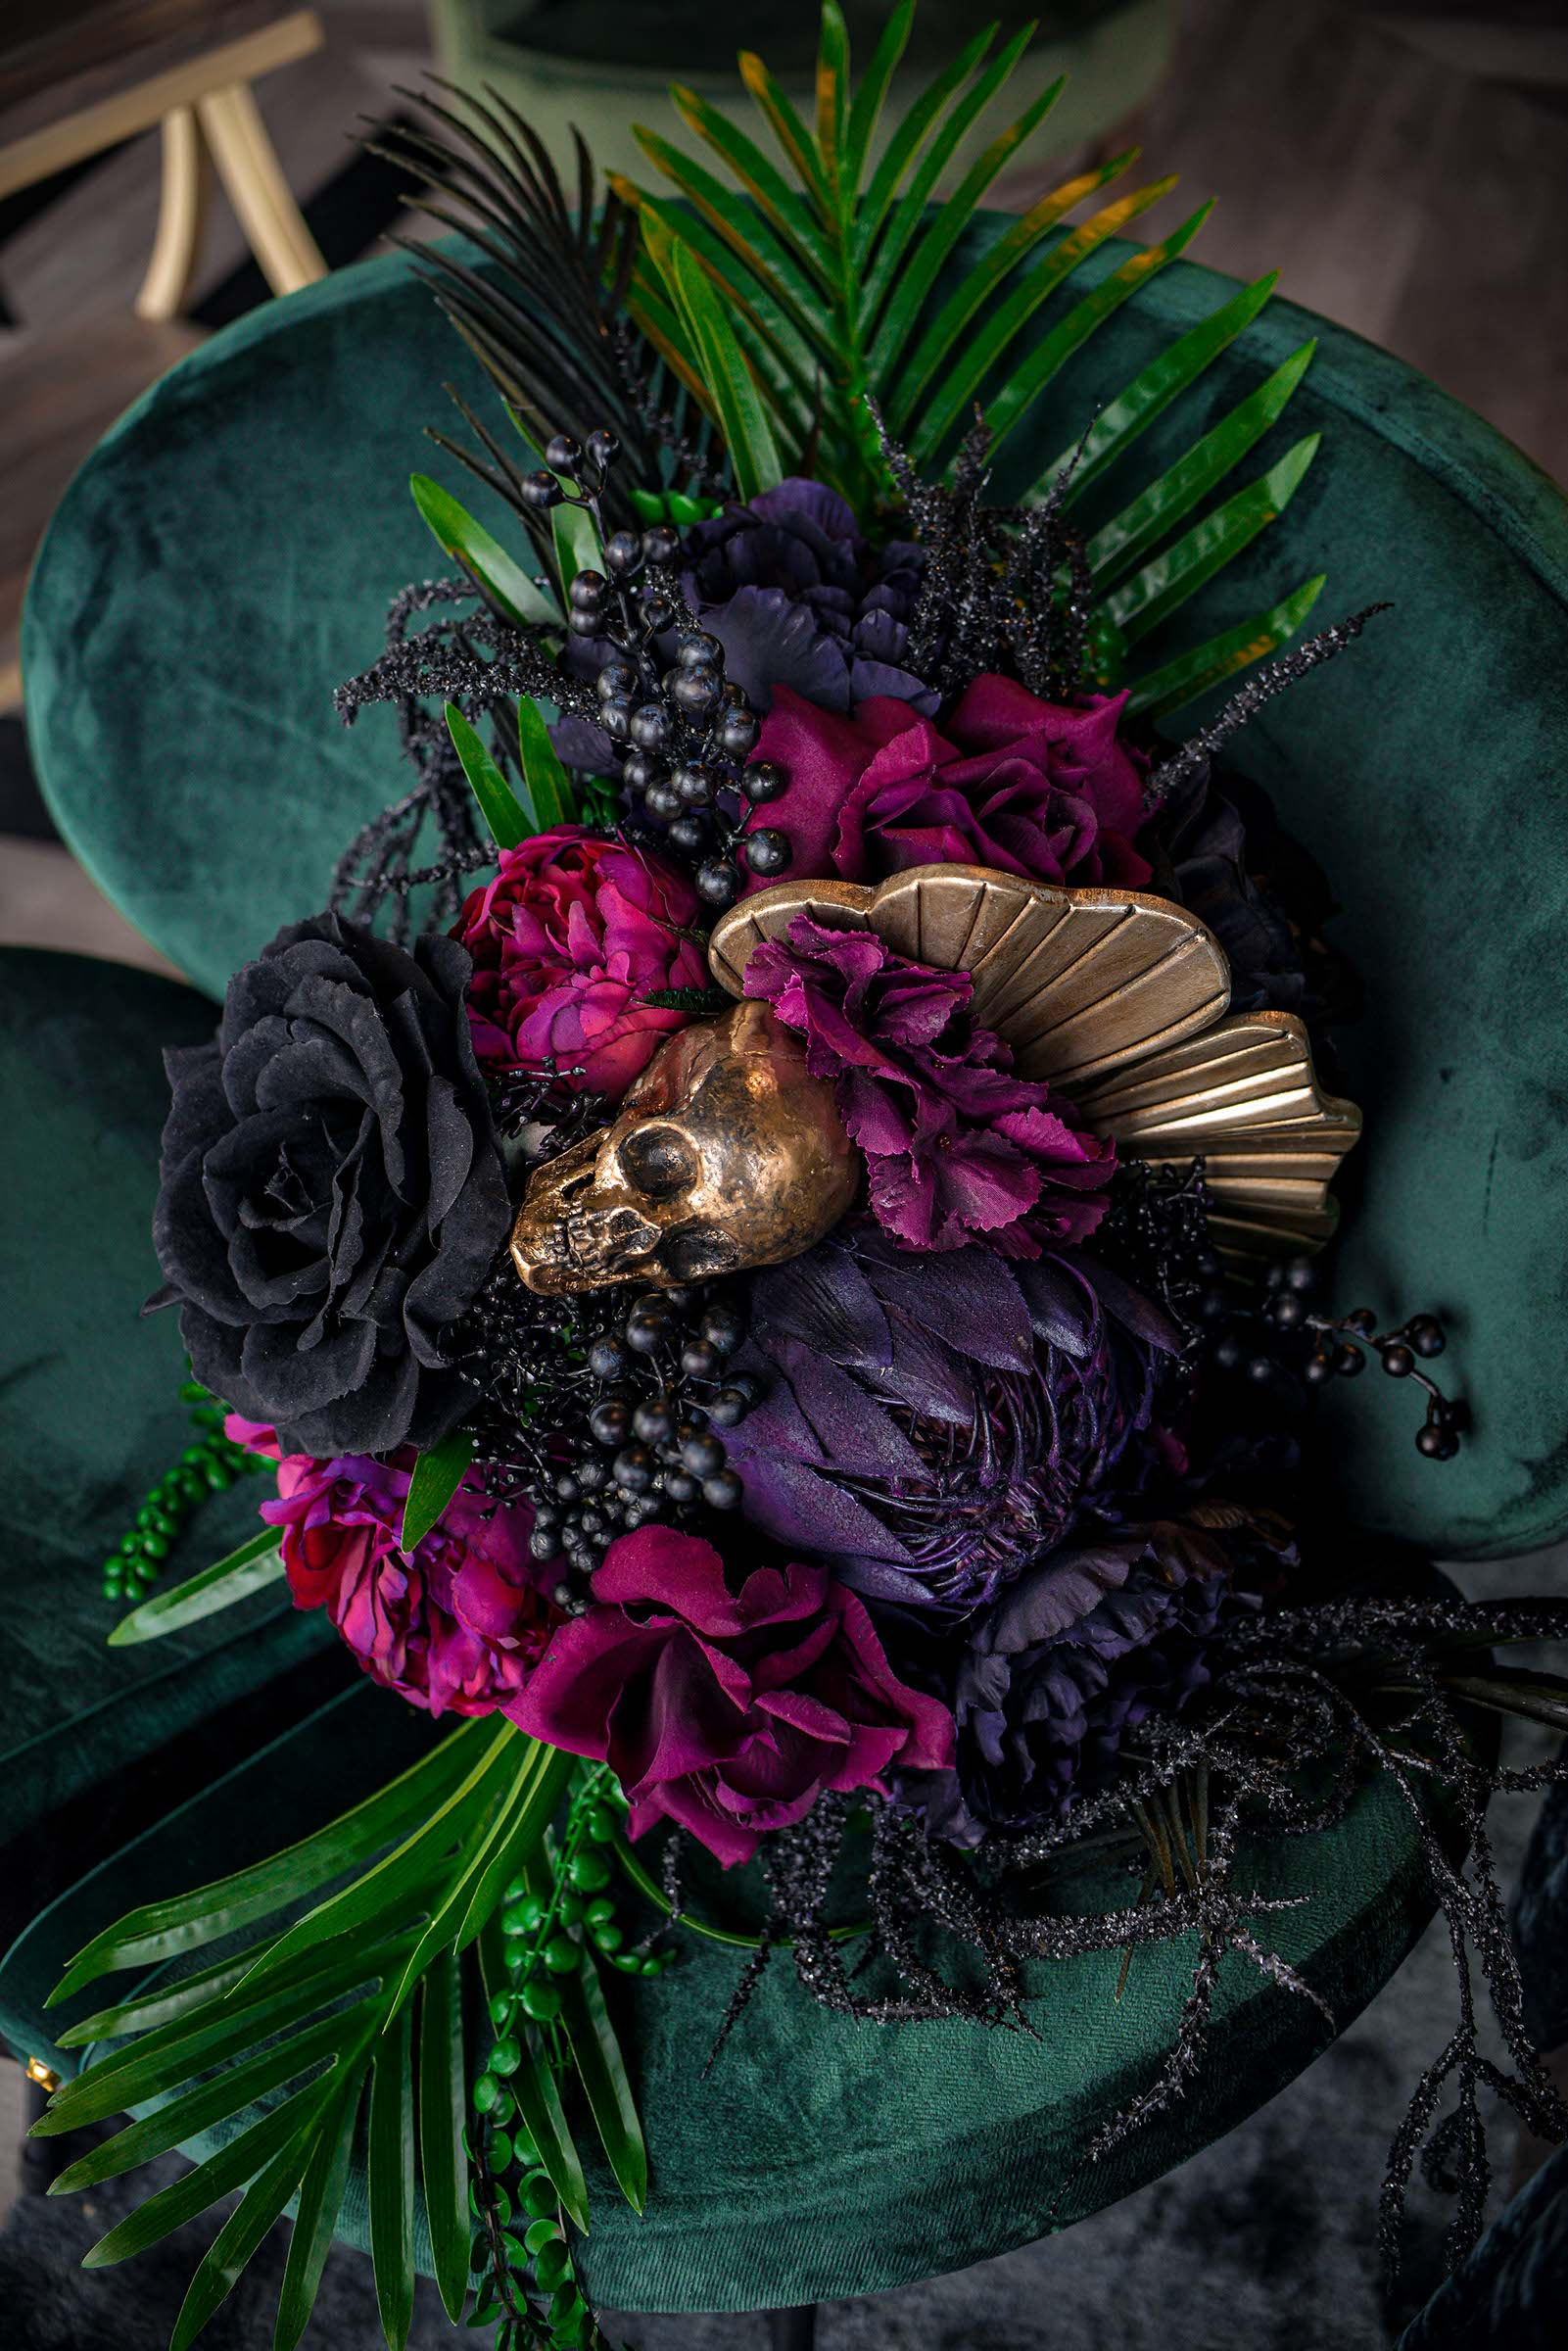 alternative luxe wedding - slytherin wedding - gothic wedding - alternative wedding - alternative wedding bouquet - gothic wedding flowers